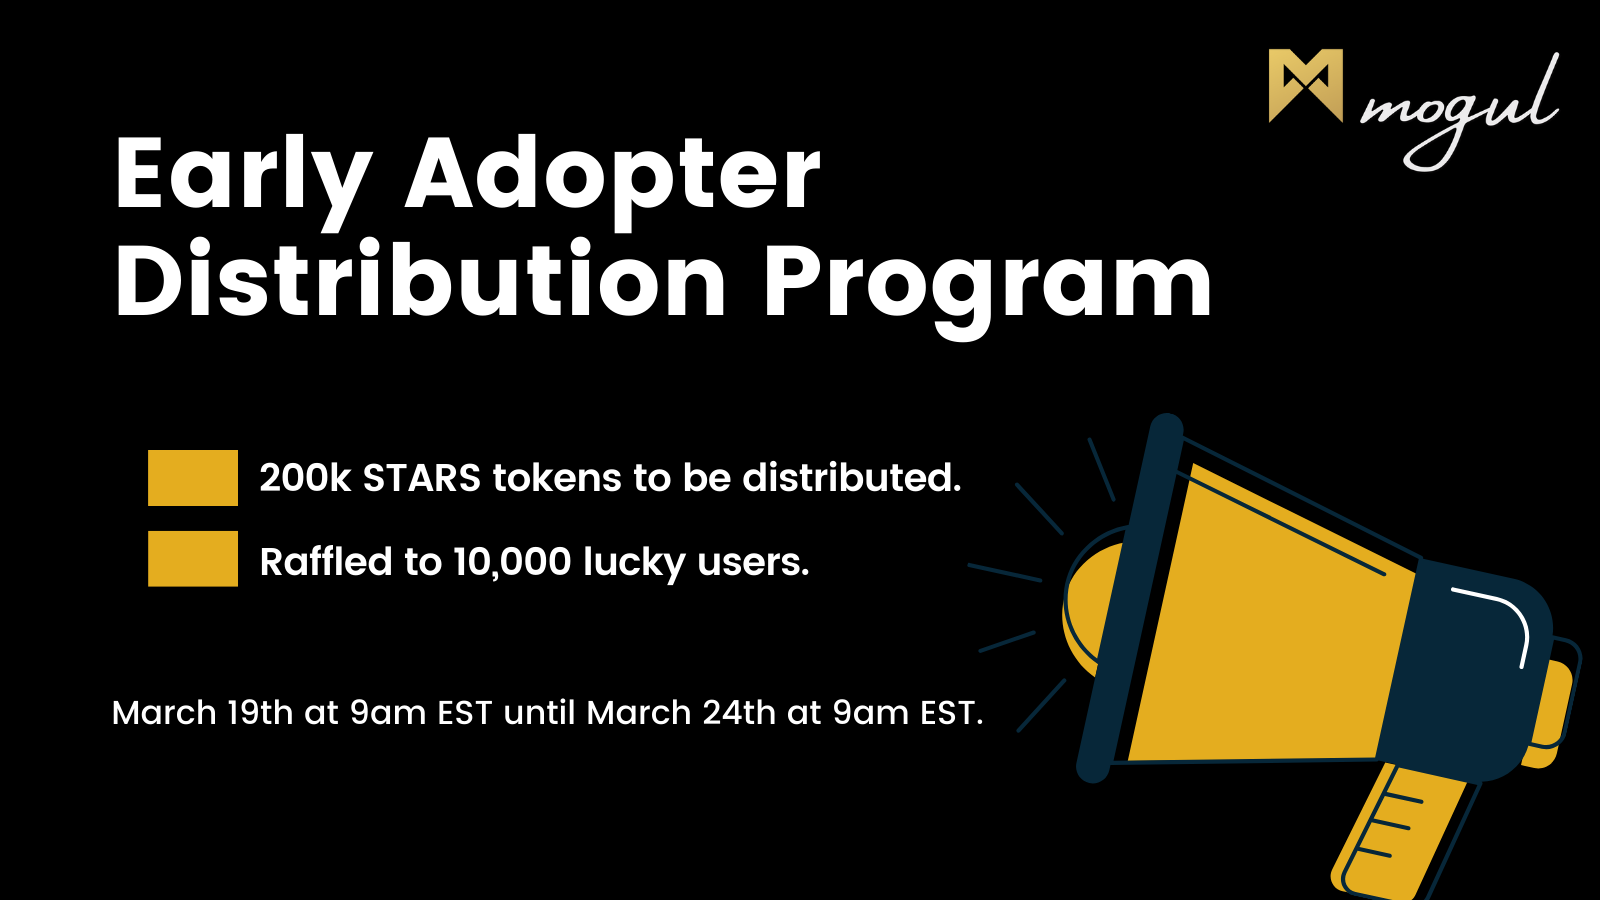 Early Adopter Distribution Program